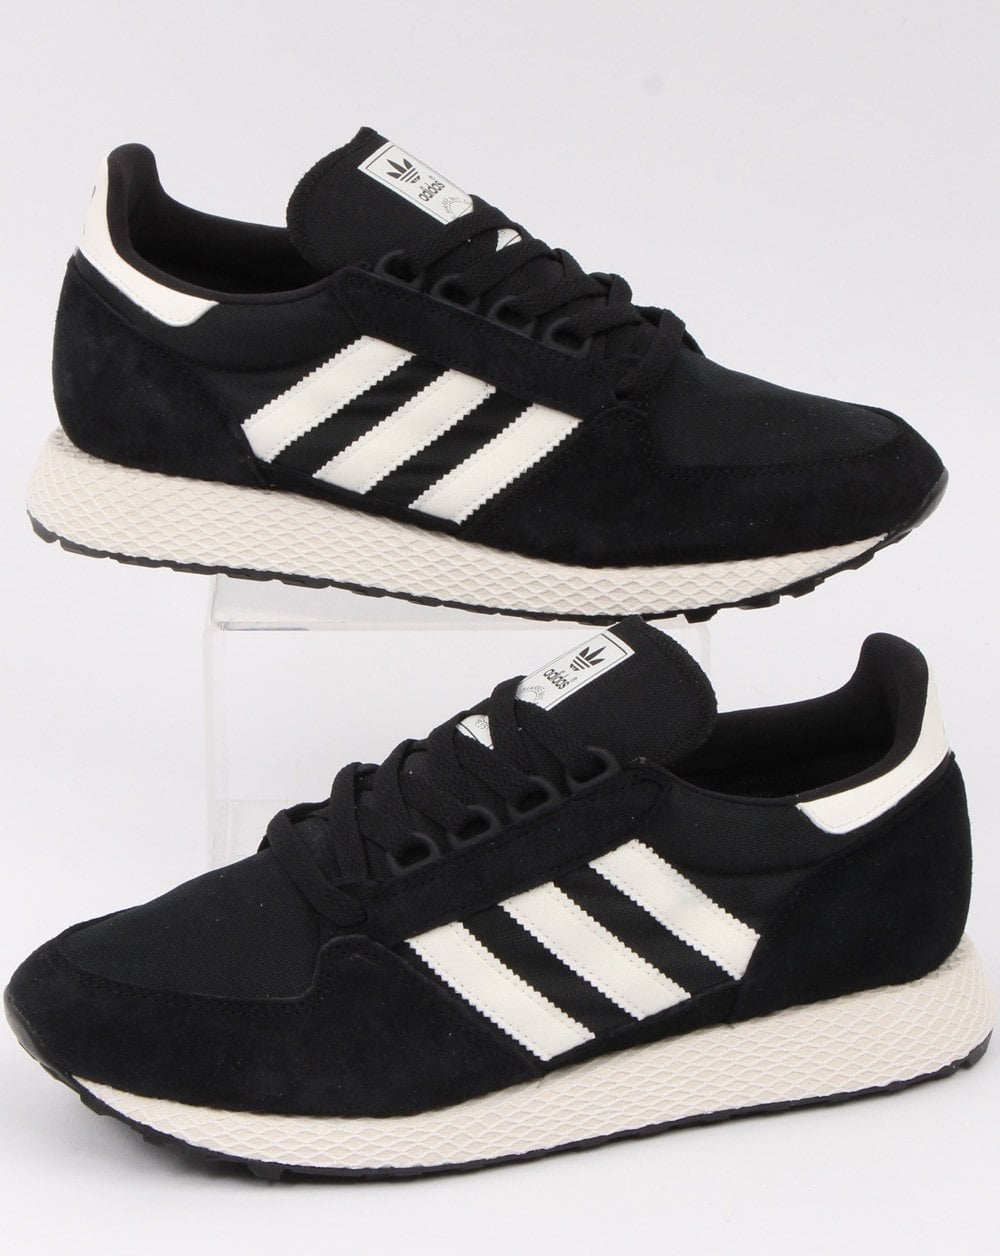 Adidas Forest Grove Trainers Black